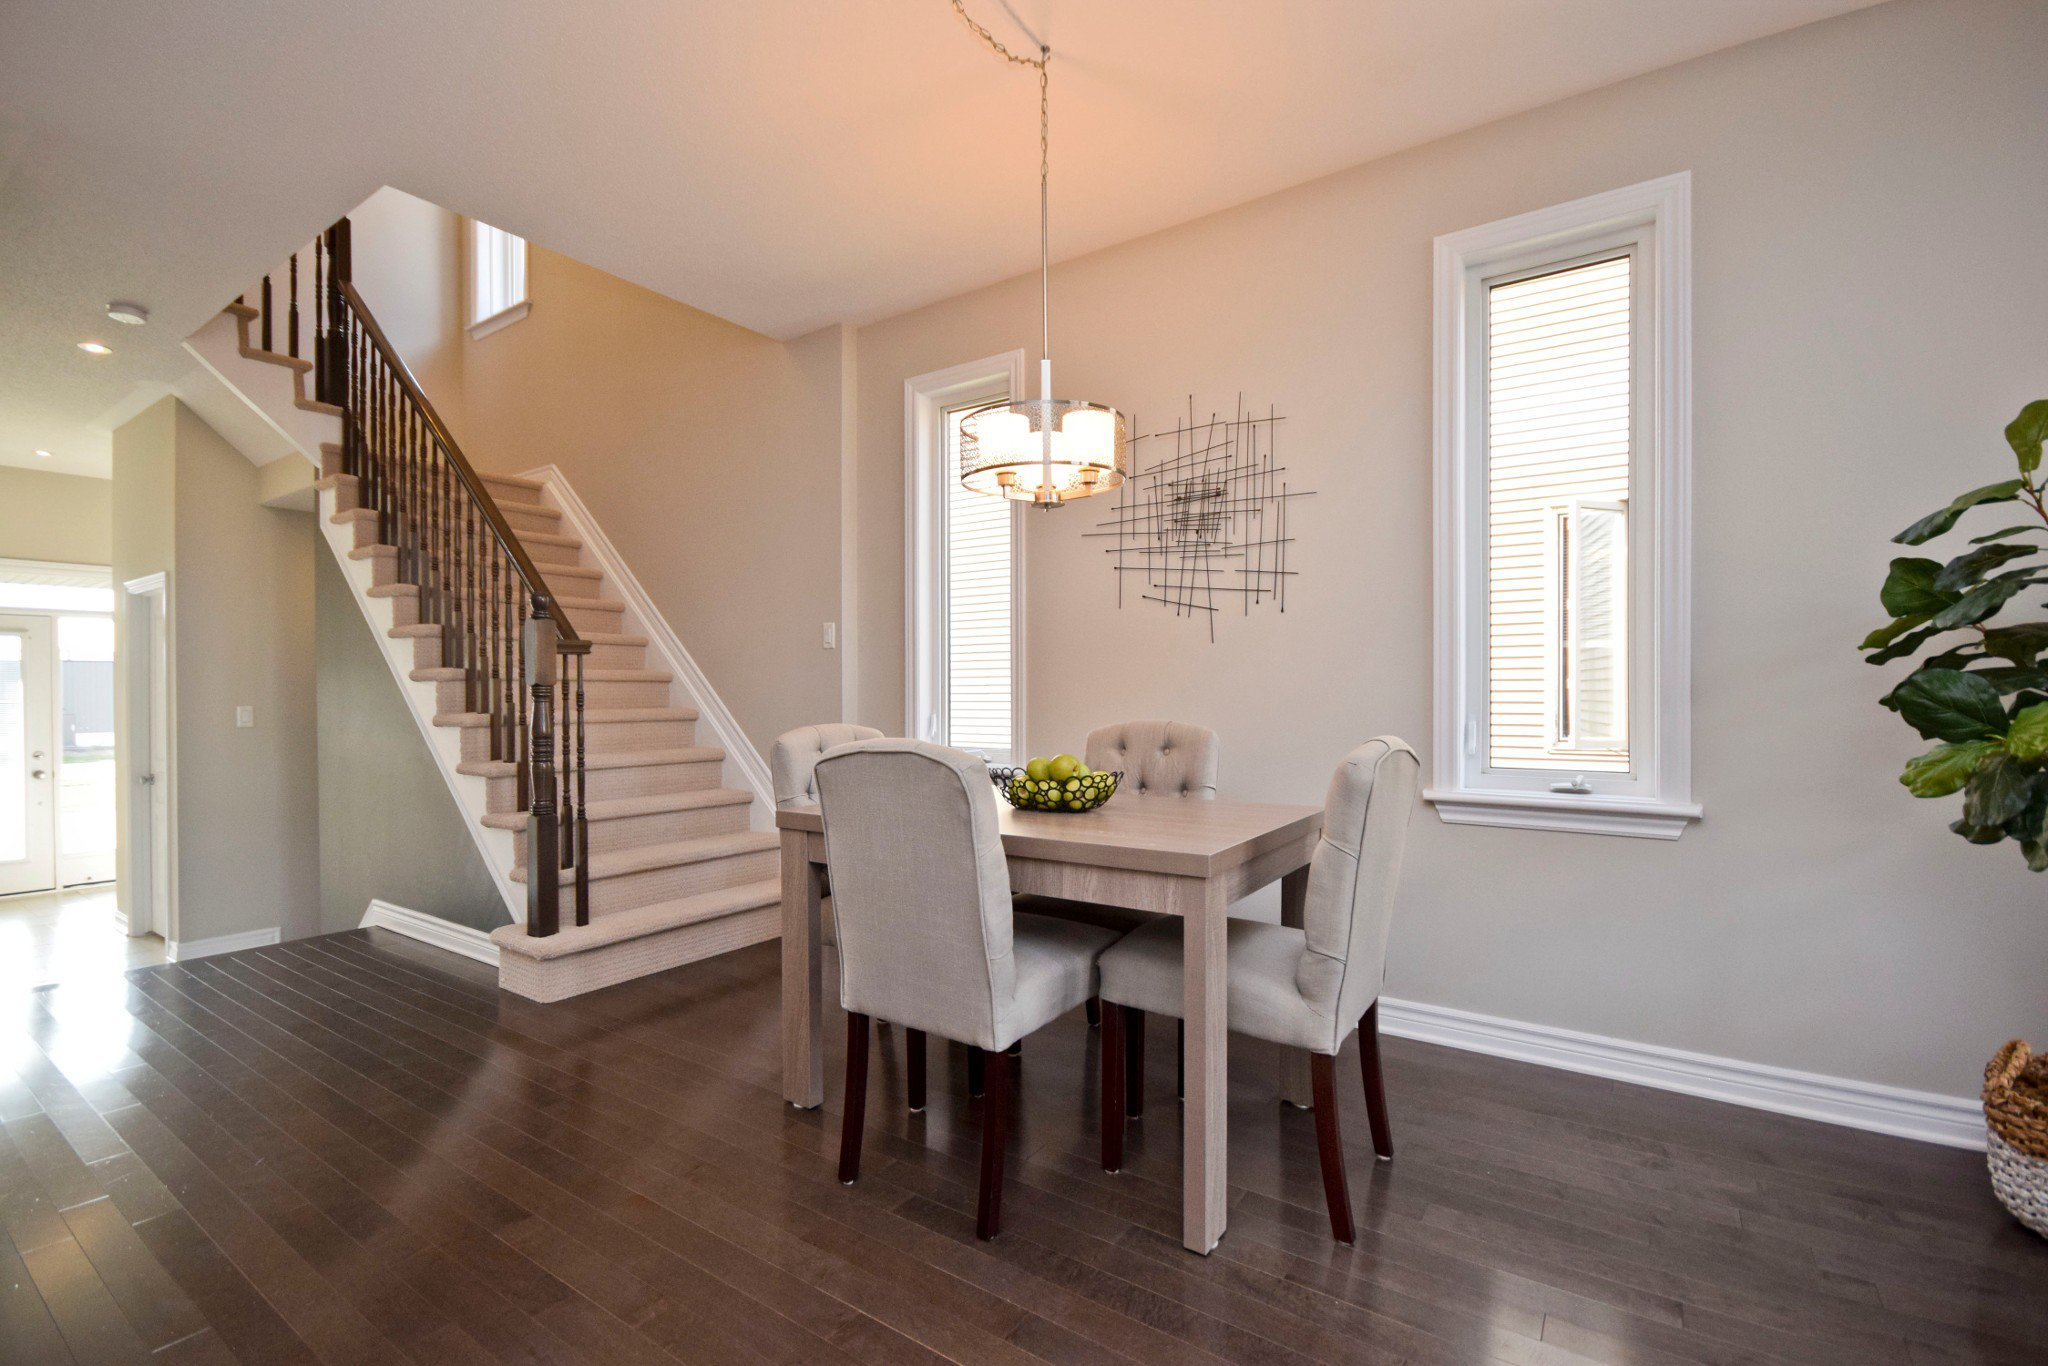 Photo 26: Photos: 131 Popplewell Crescent in Ottawa: Cedargrove / Fraserdale House for sale (Barrhaven)  : MLS®# 1130335